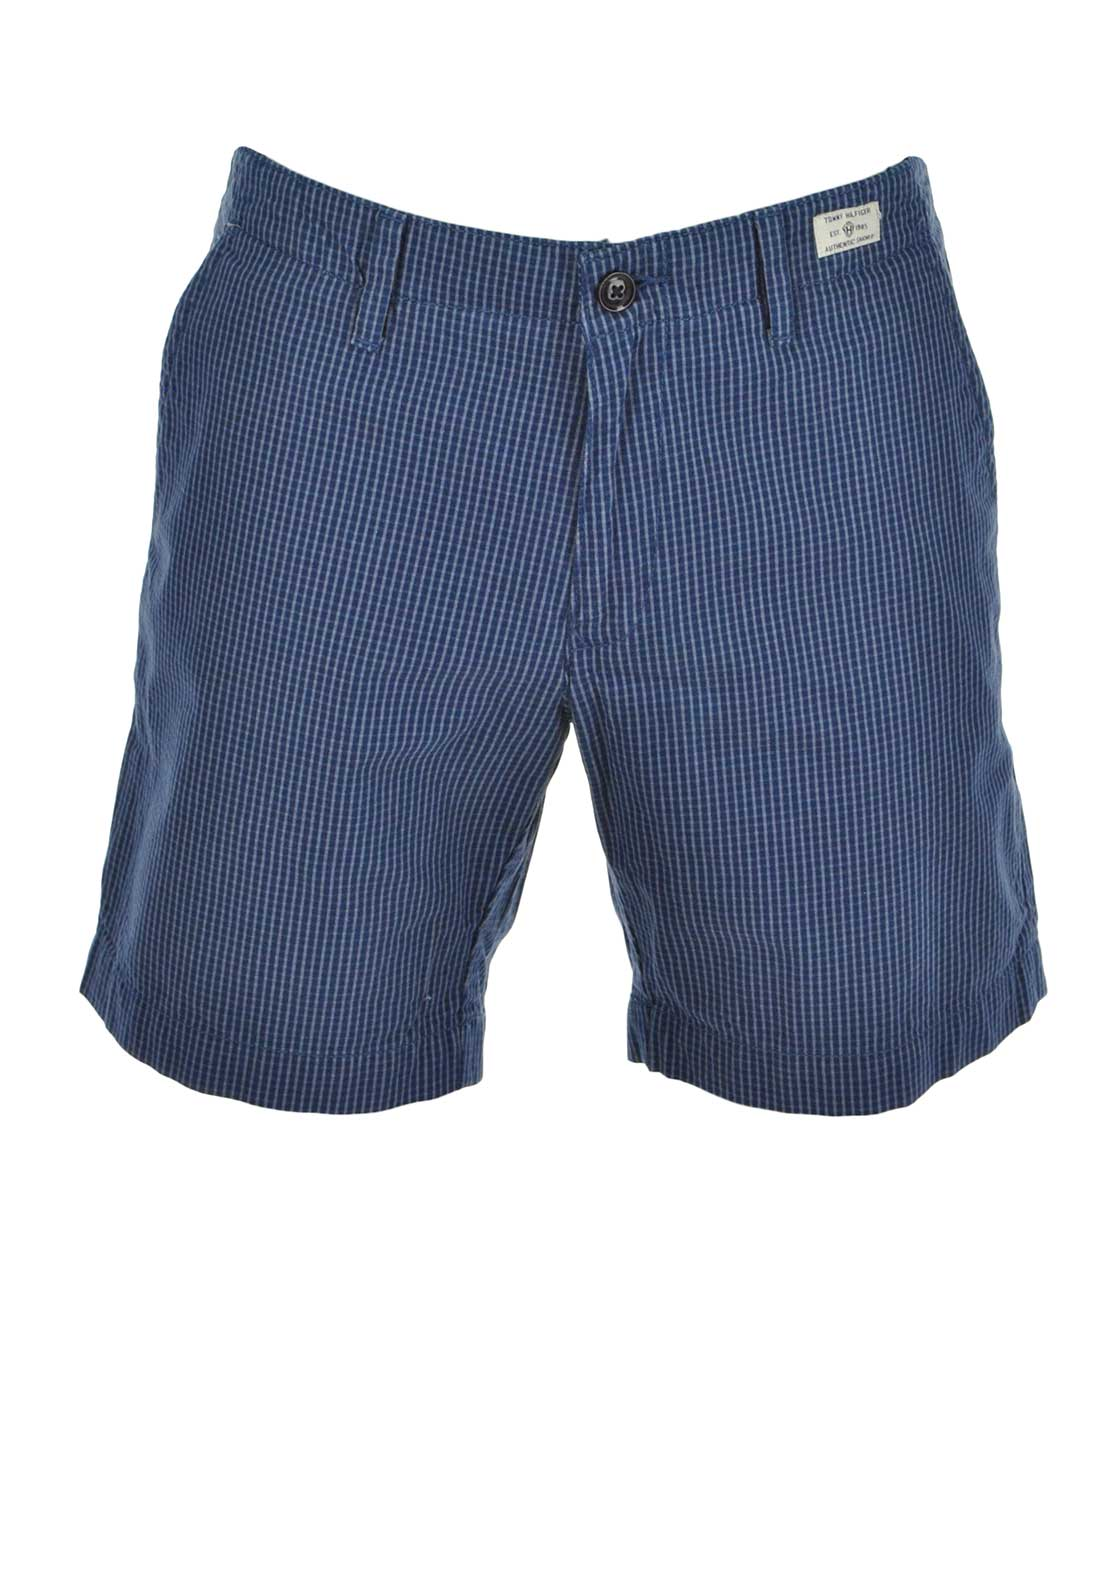 Tommy Hilfiger Mens Brooke Cotton Short, Blue Multi